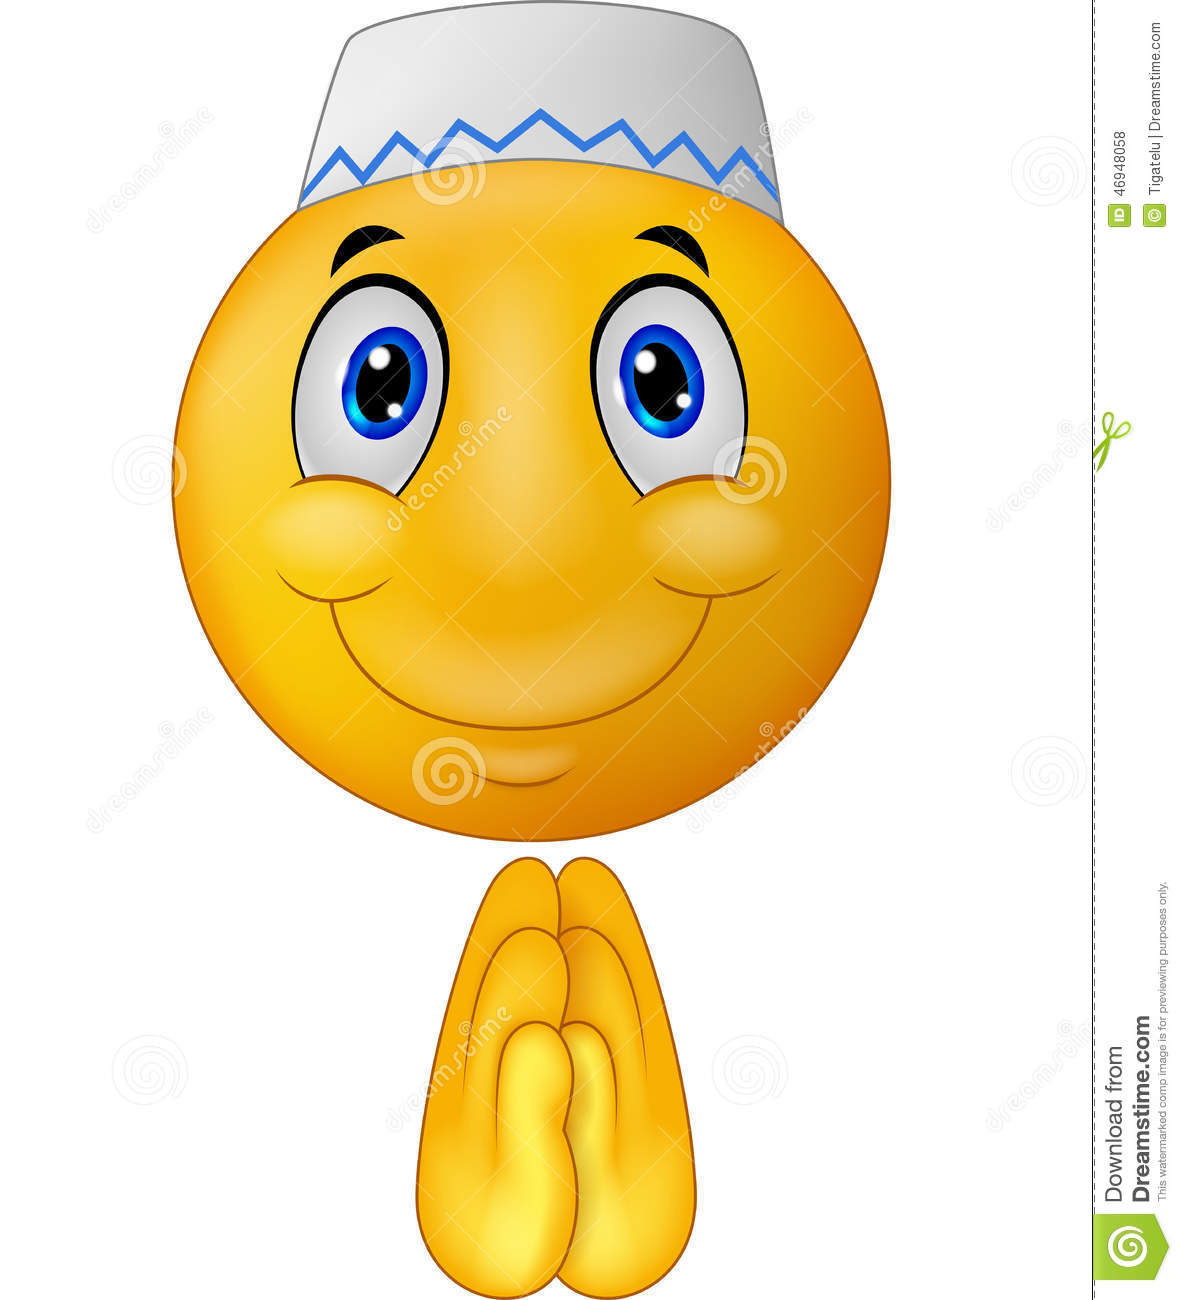 Cartoon Greeting Muslim Emoticon Stock Vector - Image: 46948058